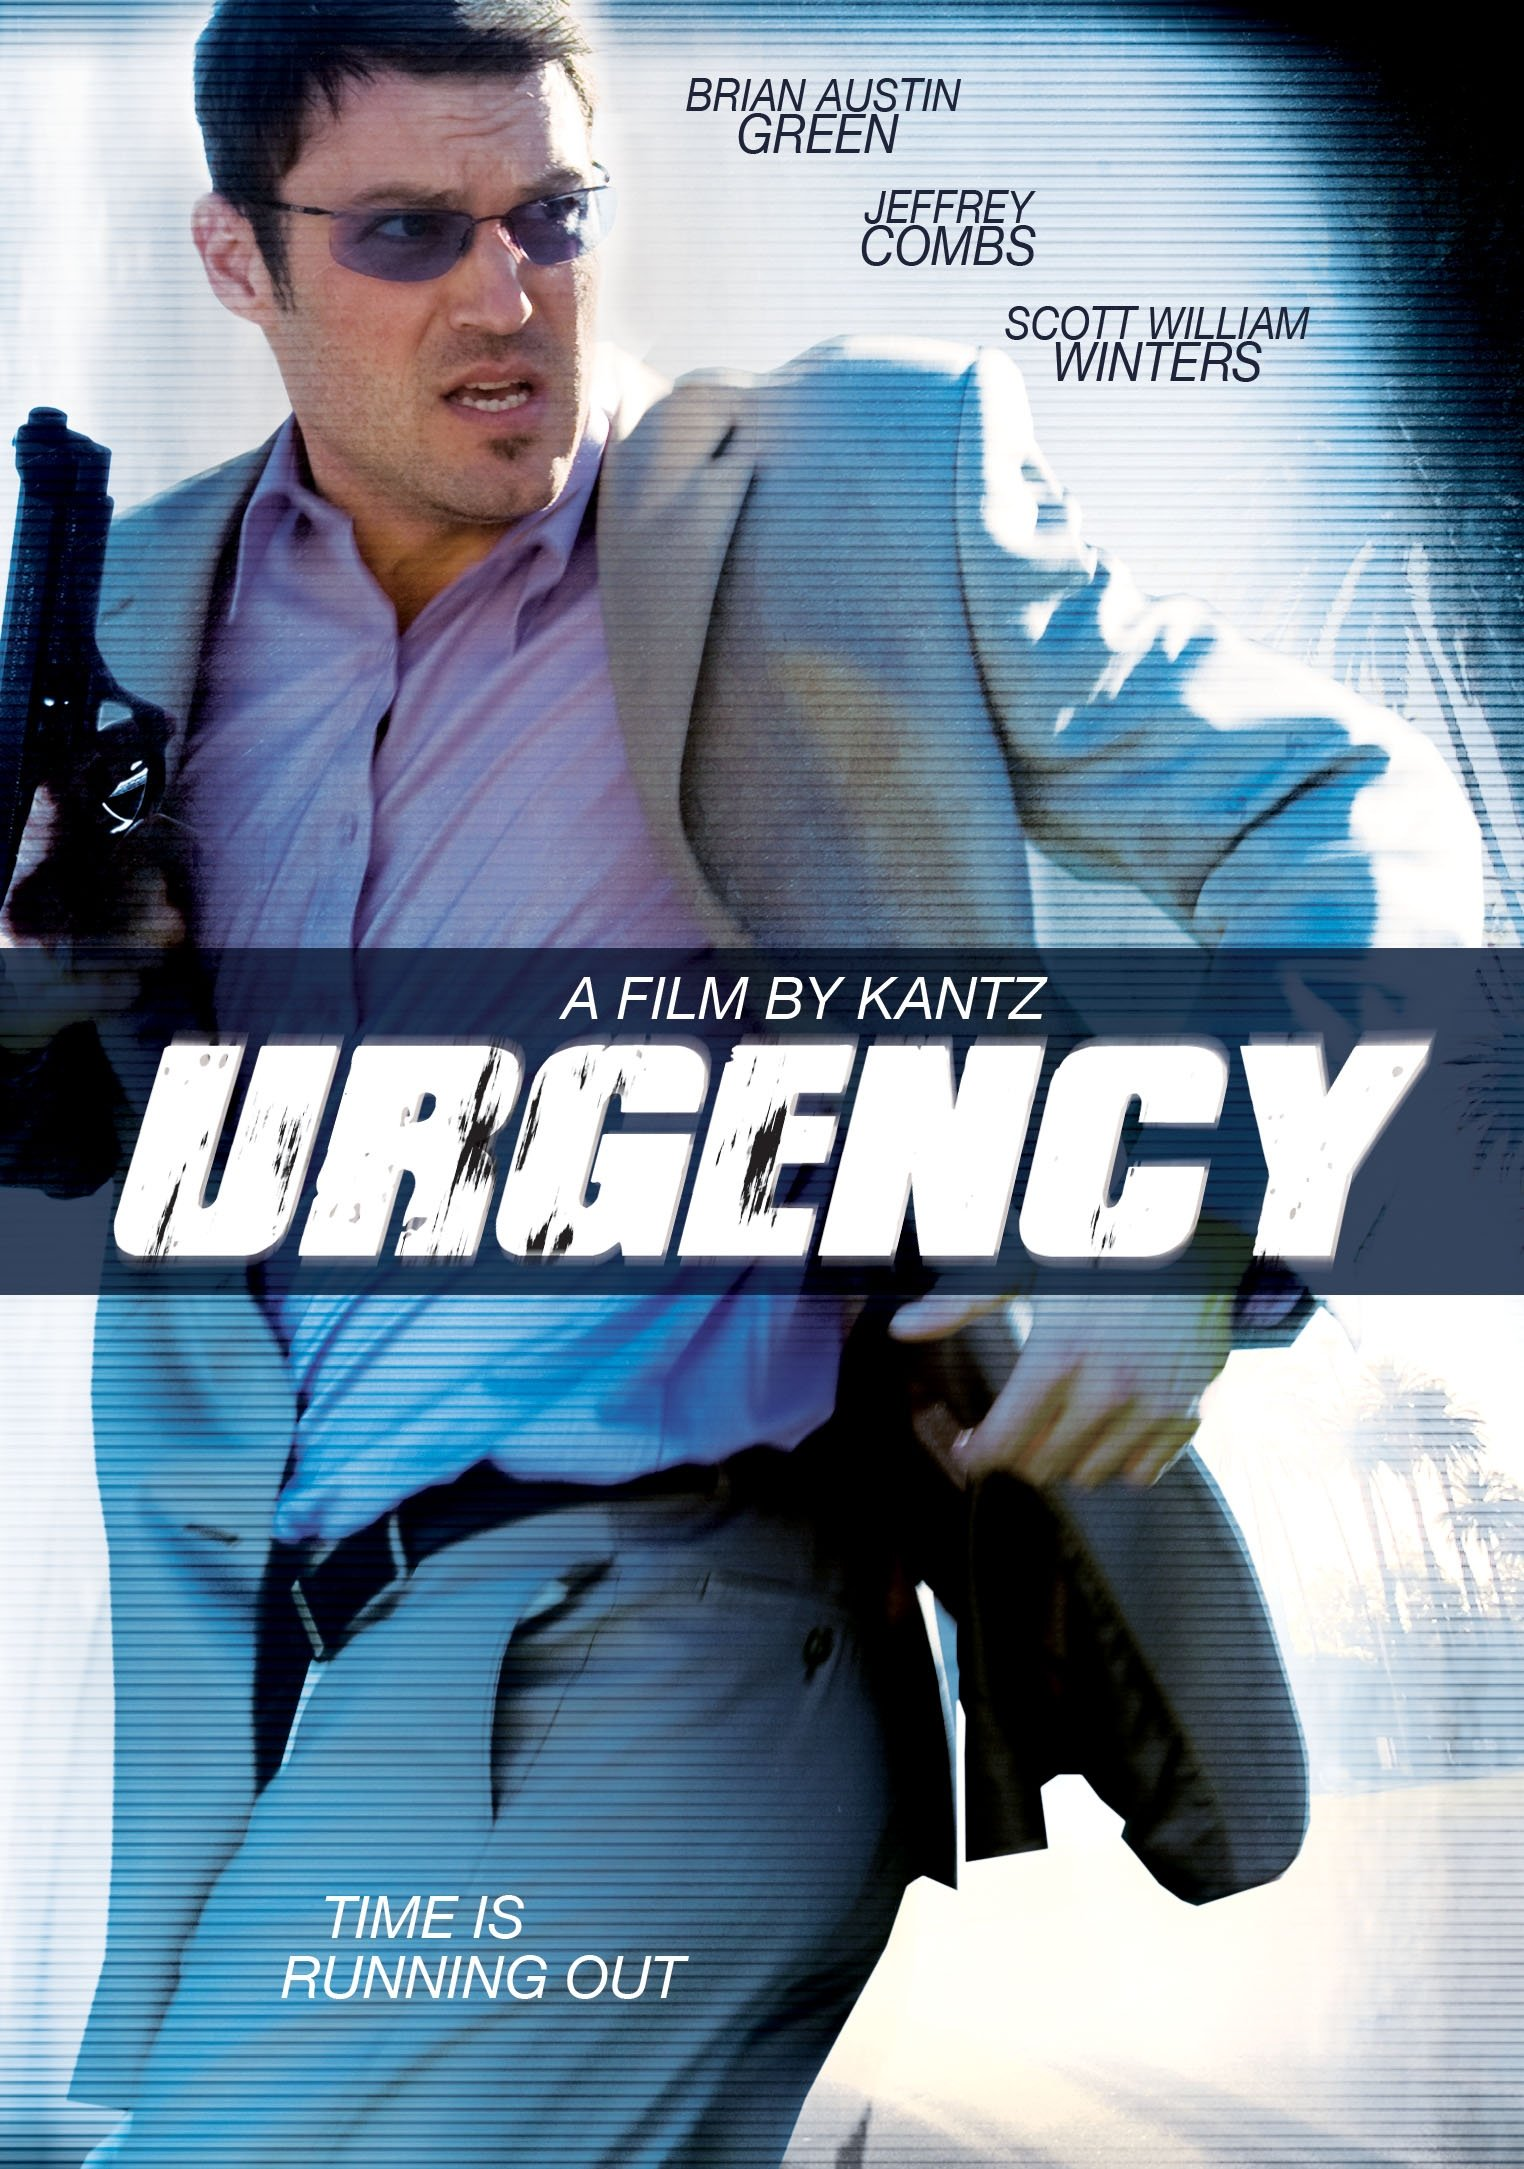 DVD : Brian Austin Green - Urgency (Widescreen, AC-3)